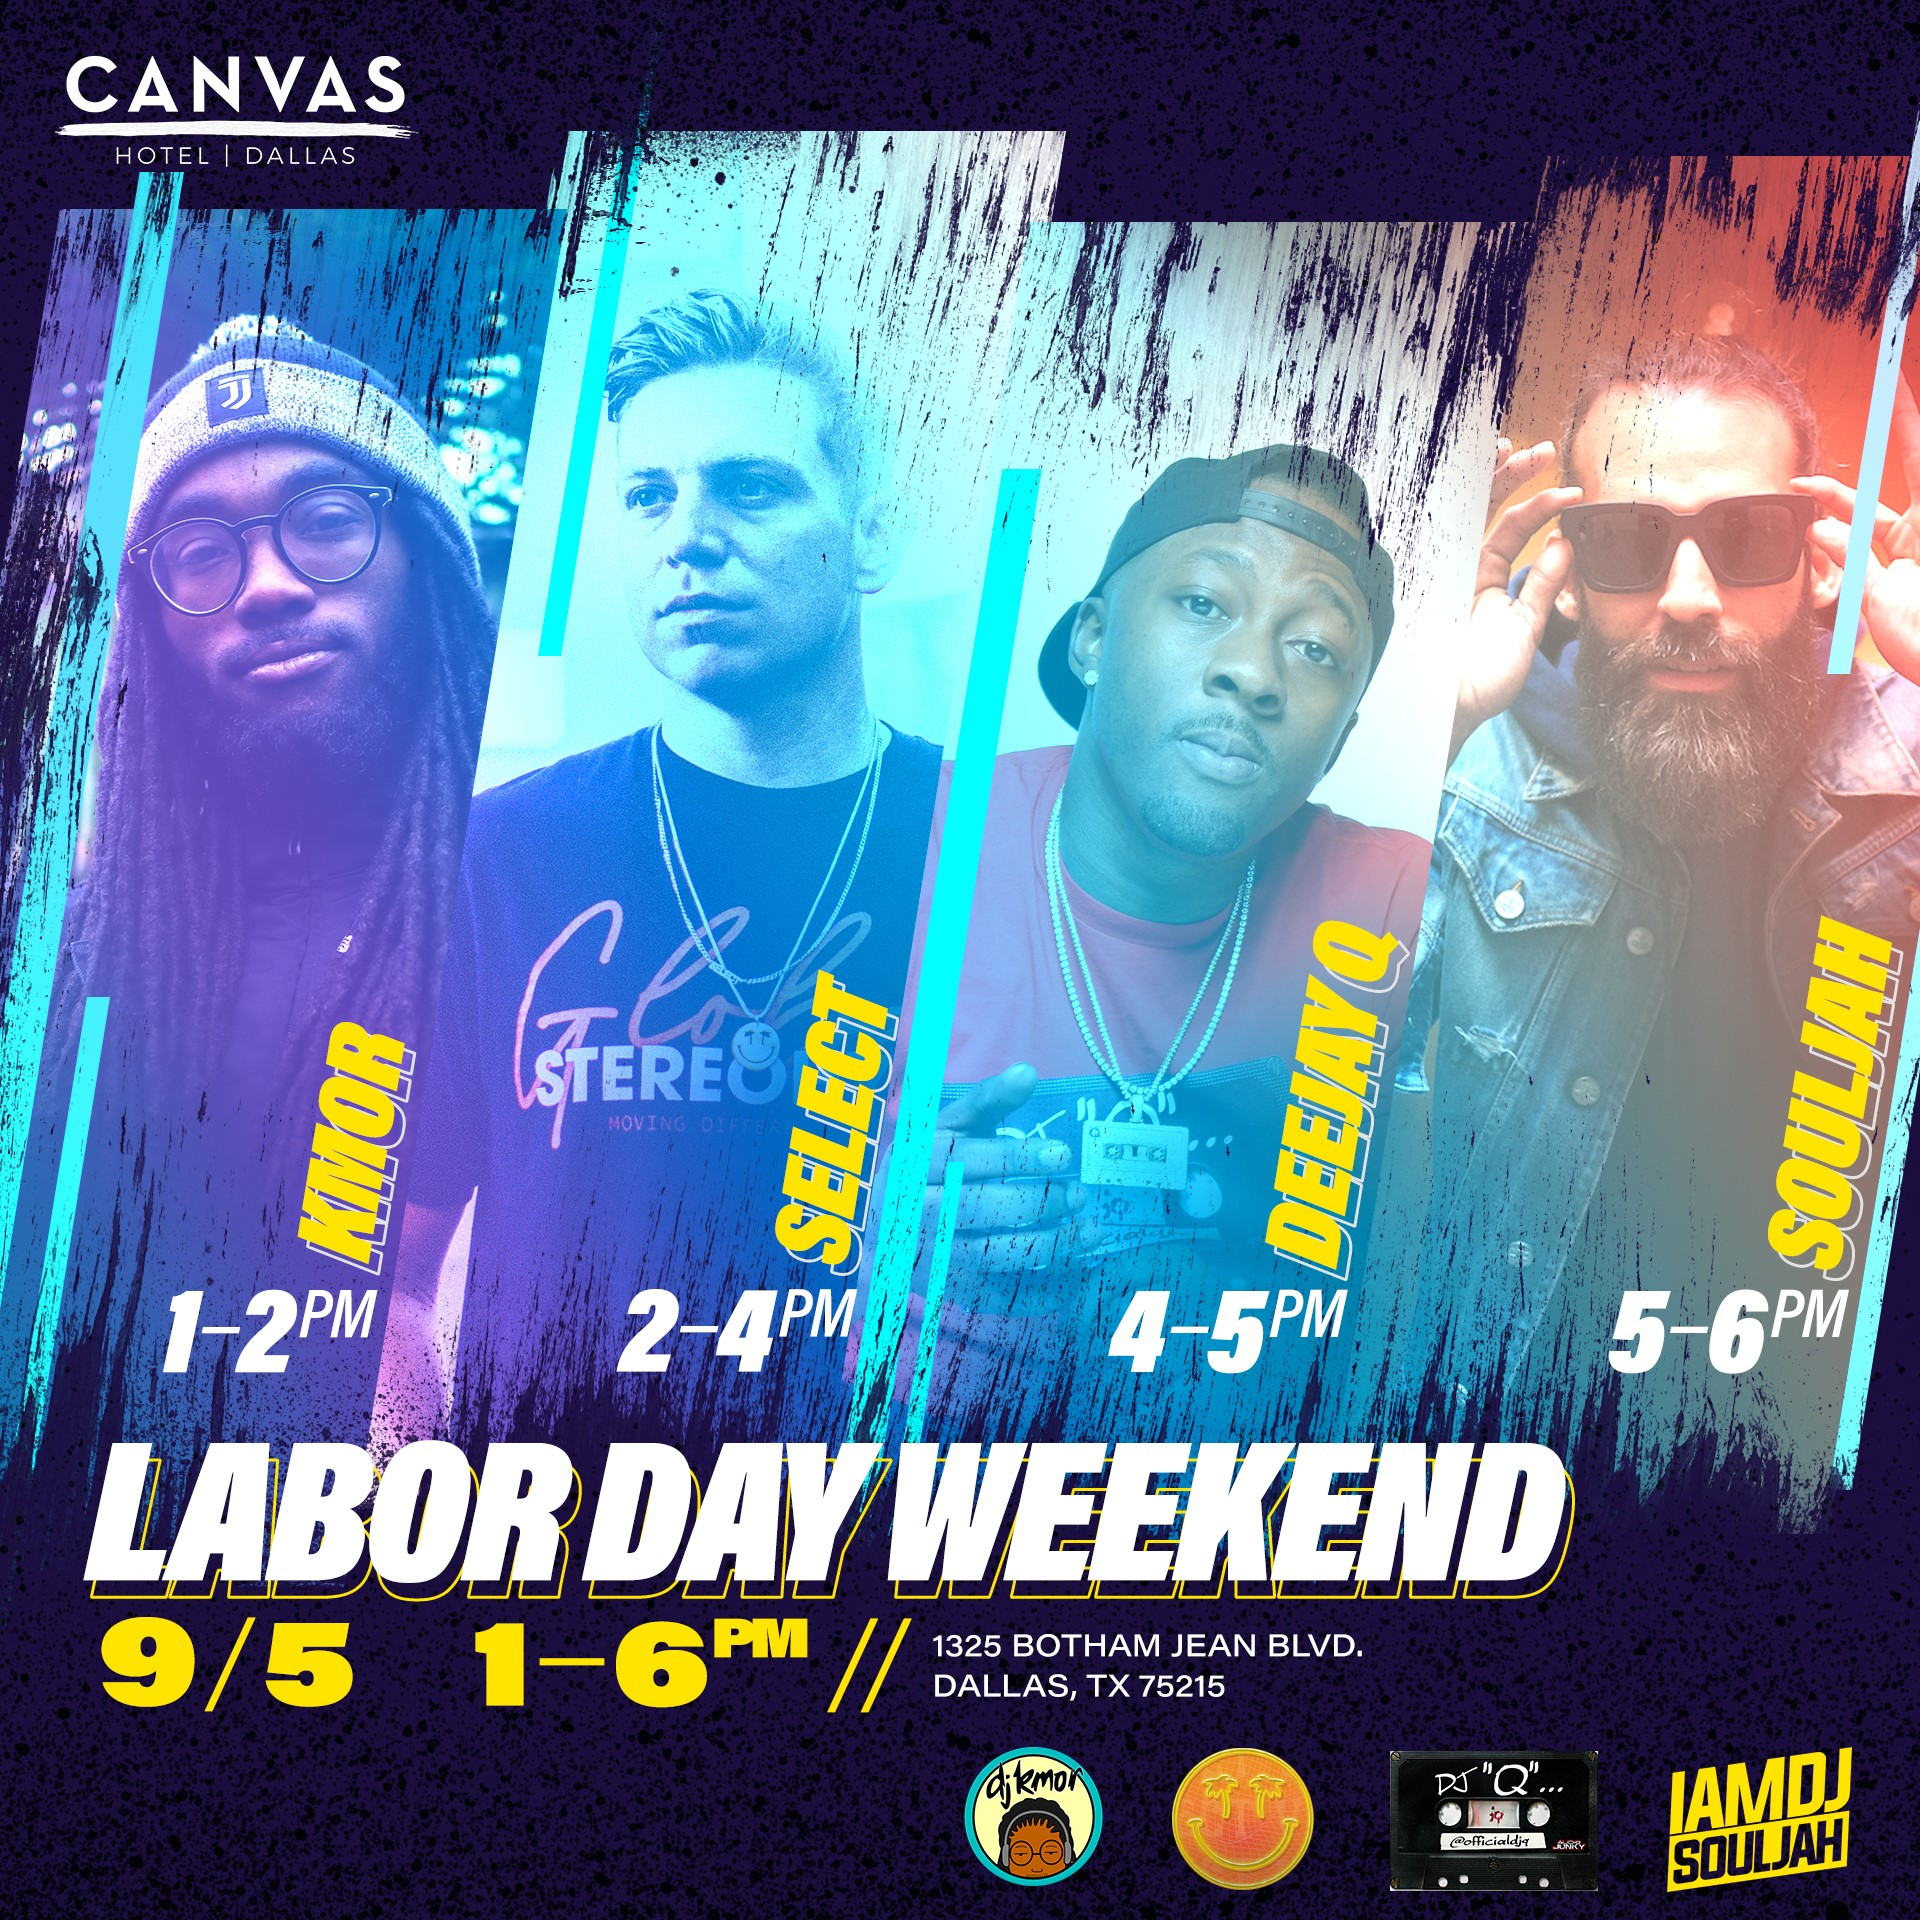 Labor Day Weekend Event Details With People